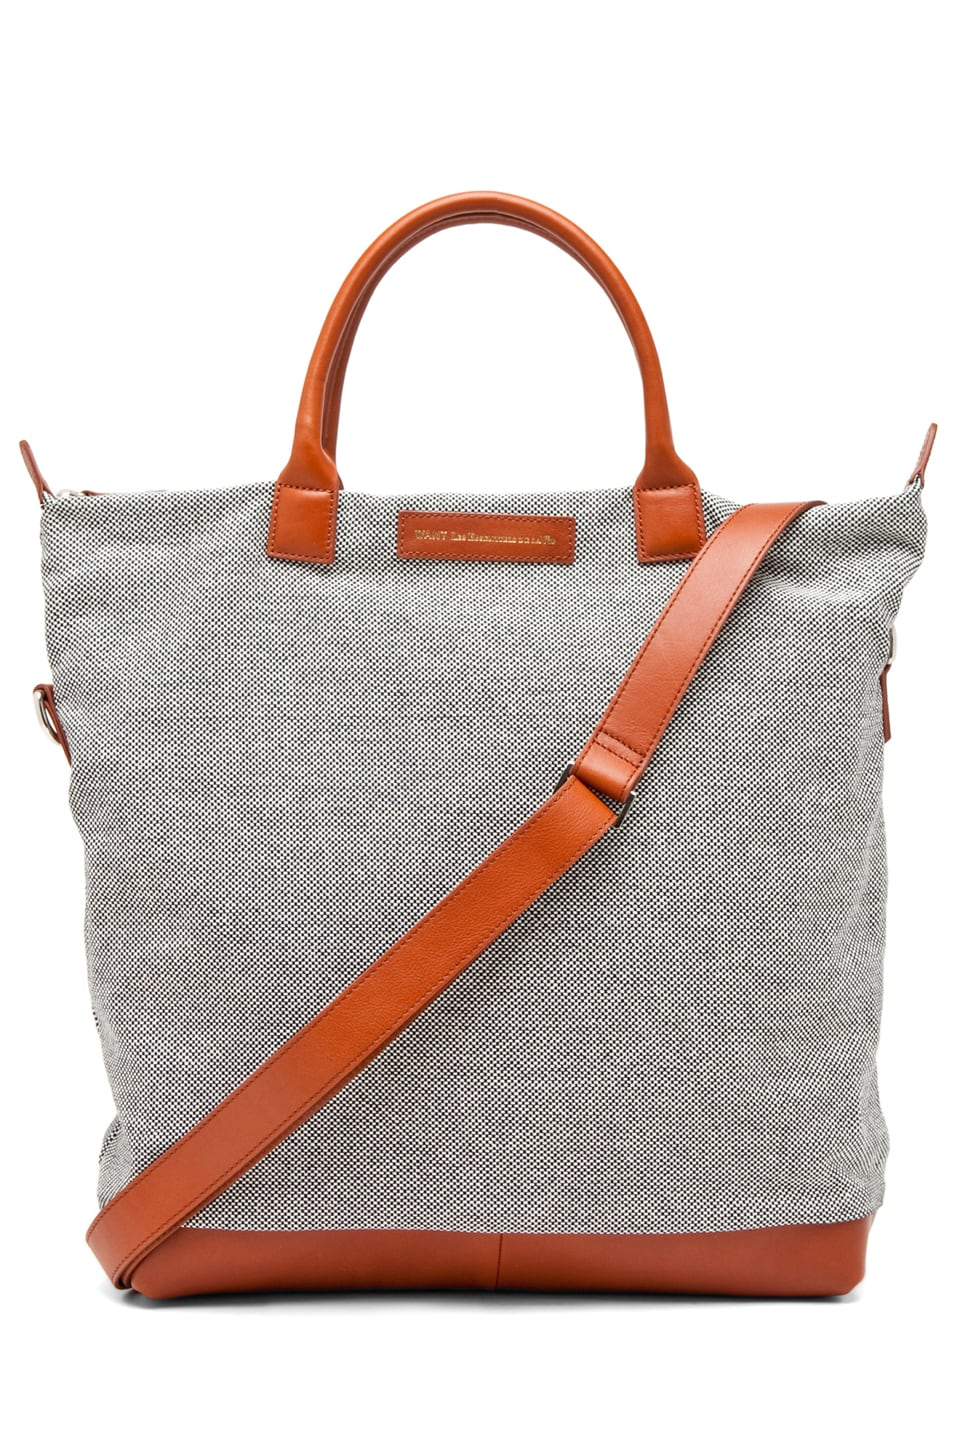 Image 1 of Want Les Essentiels De La Vie O'Hare Shopper Tote in Checker Canvas/Cognac